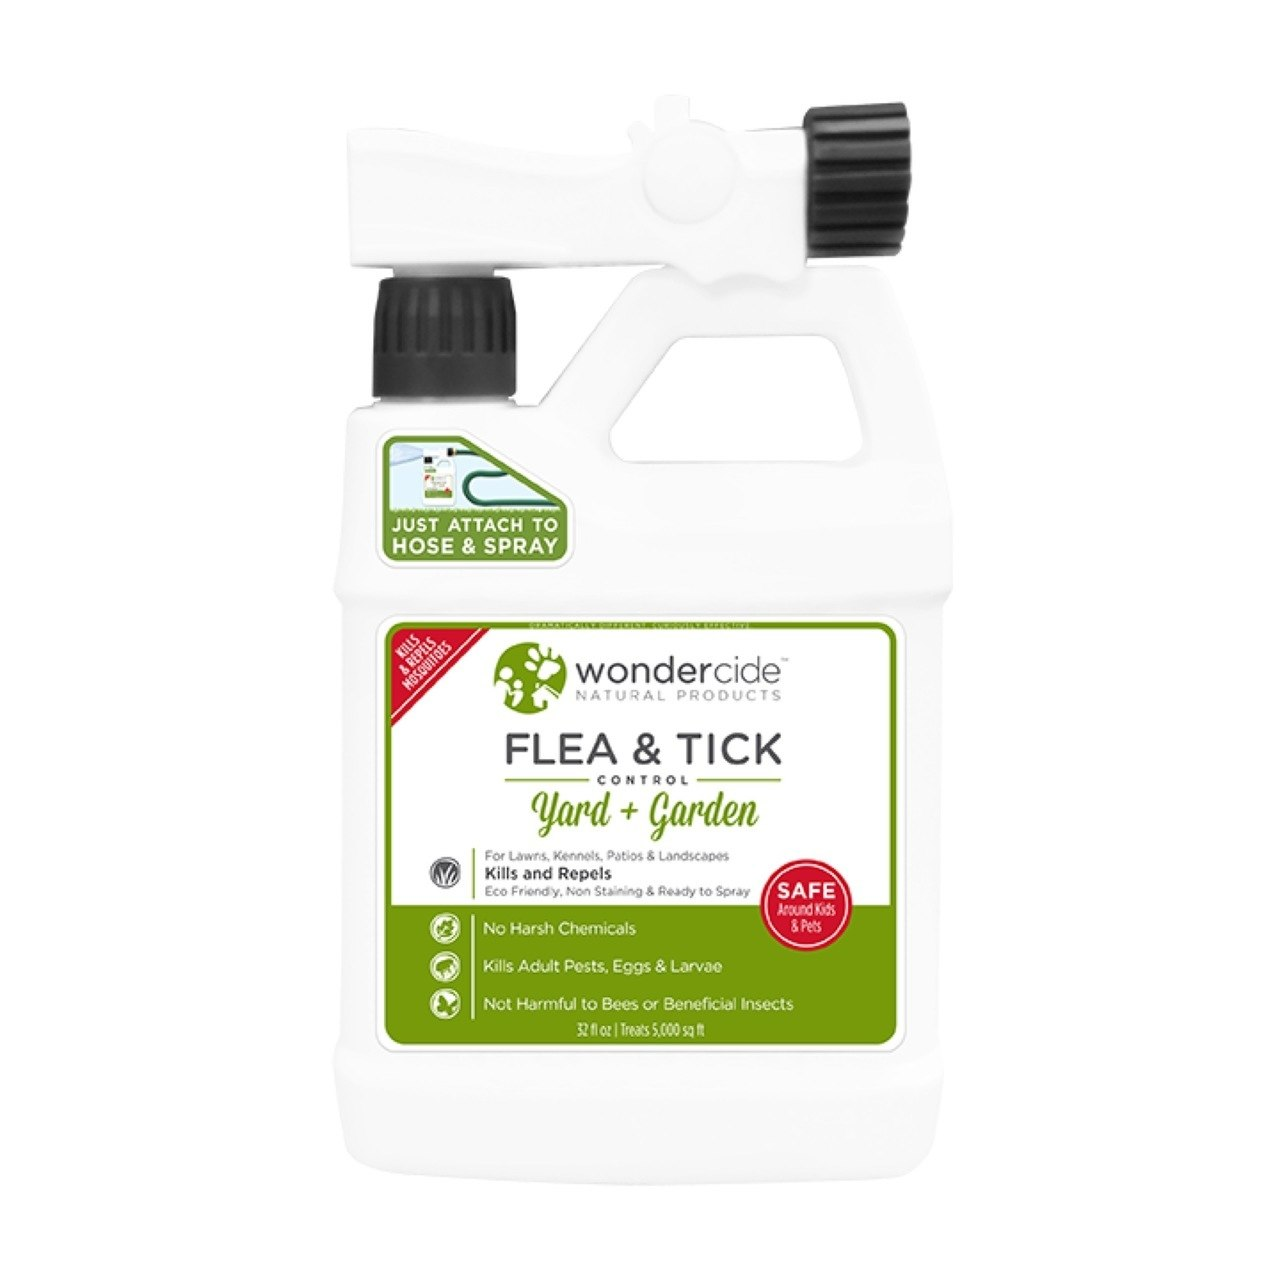 Wondercide Flea & Tick Control Yard & Garden Ready To Use Insecticide, 32-oz